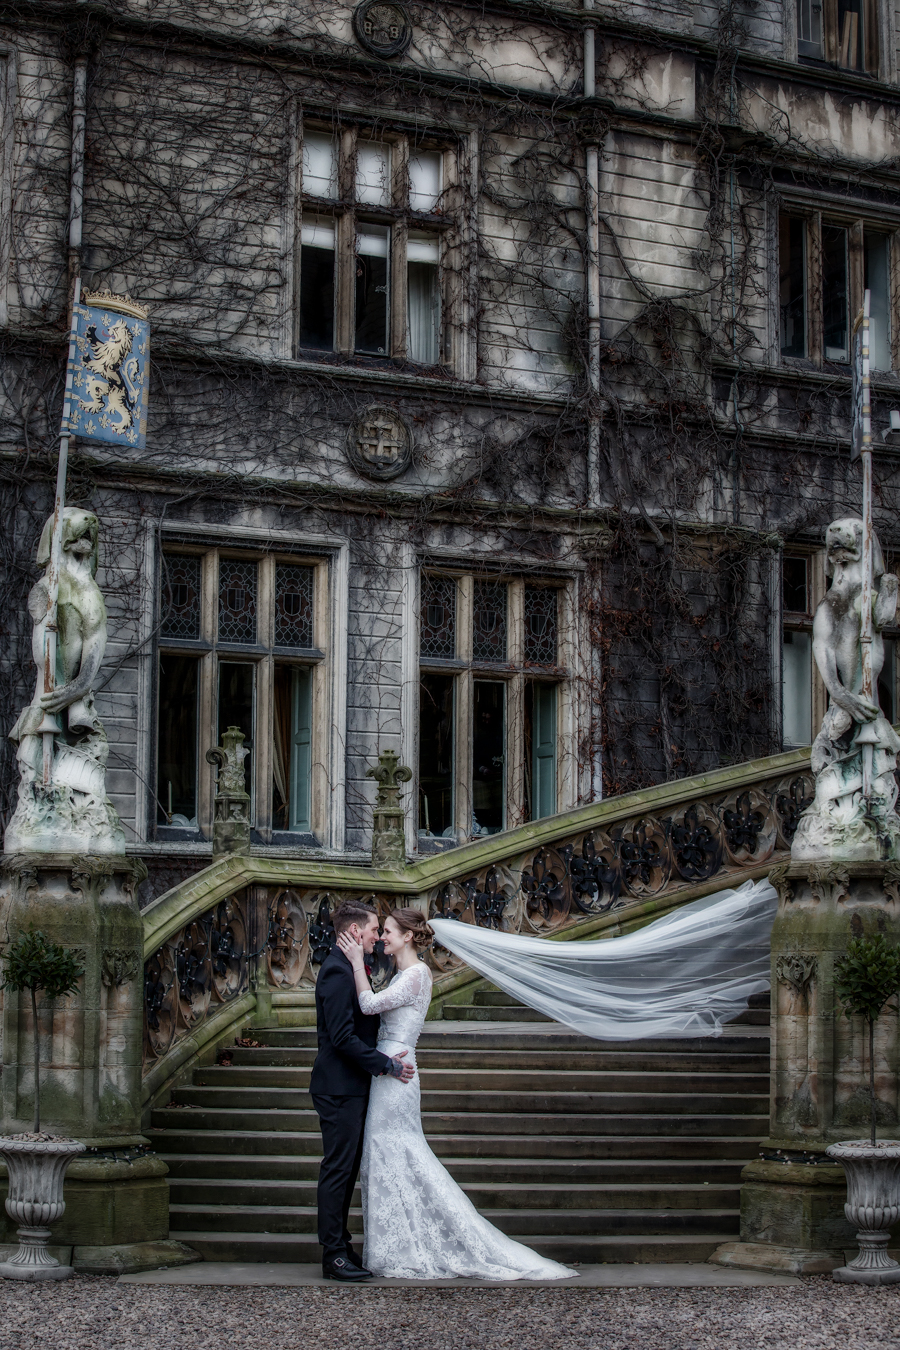 Carlton Towers Wedding photographs | Award winning Yorkshire wedding photography | Carlton Towers wedding photographer